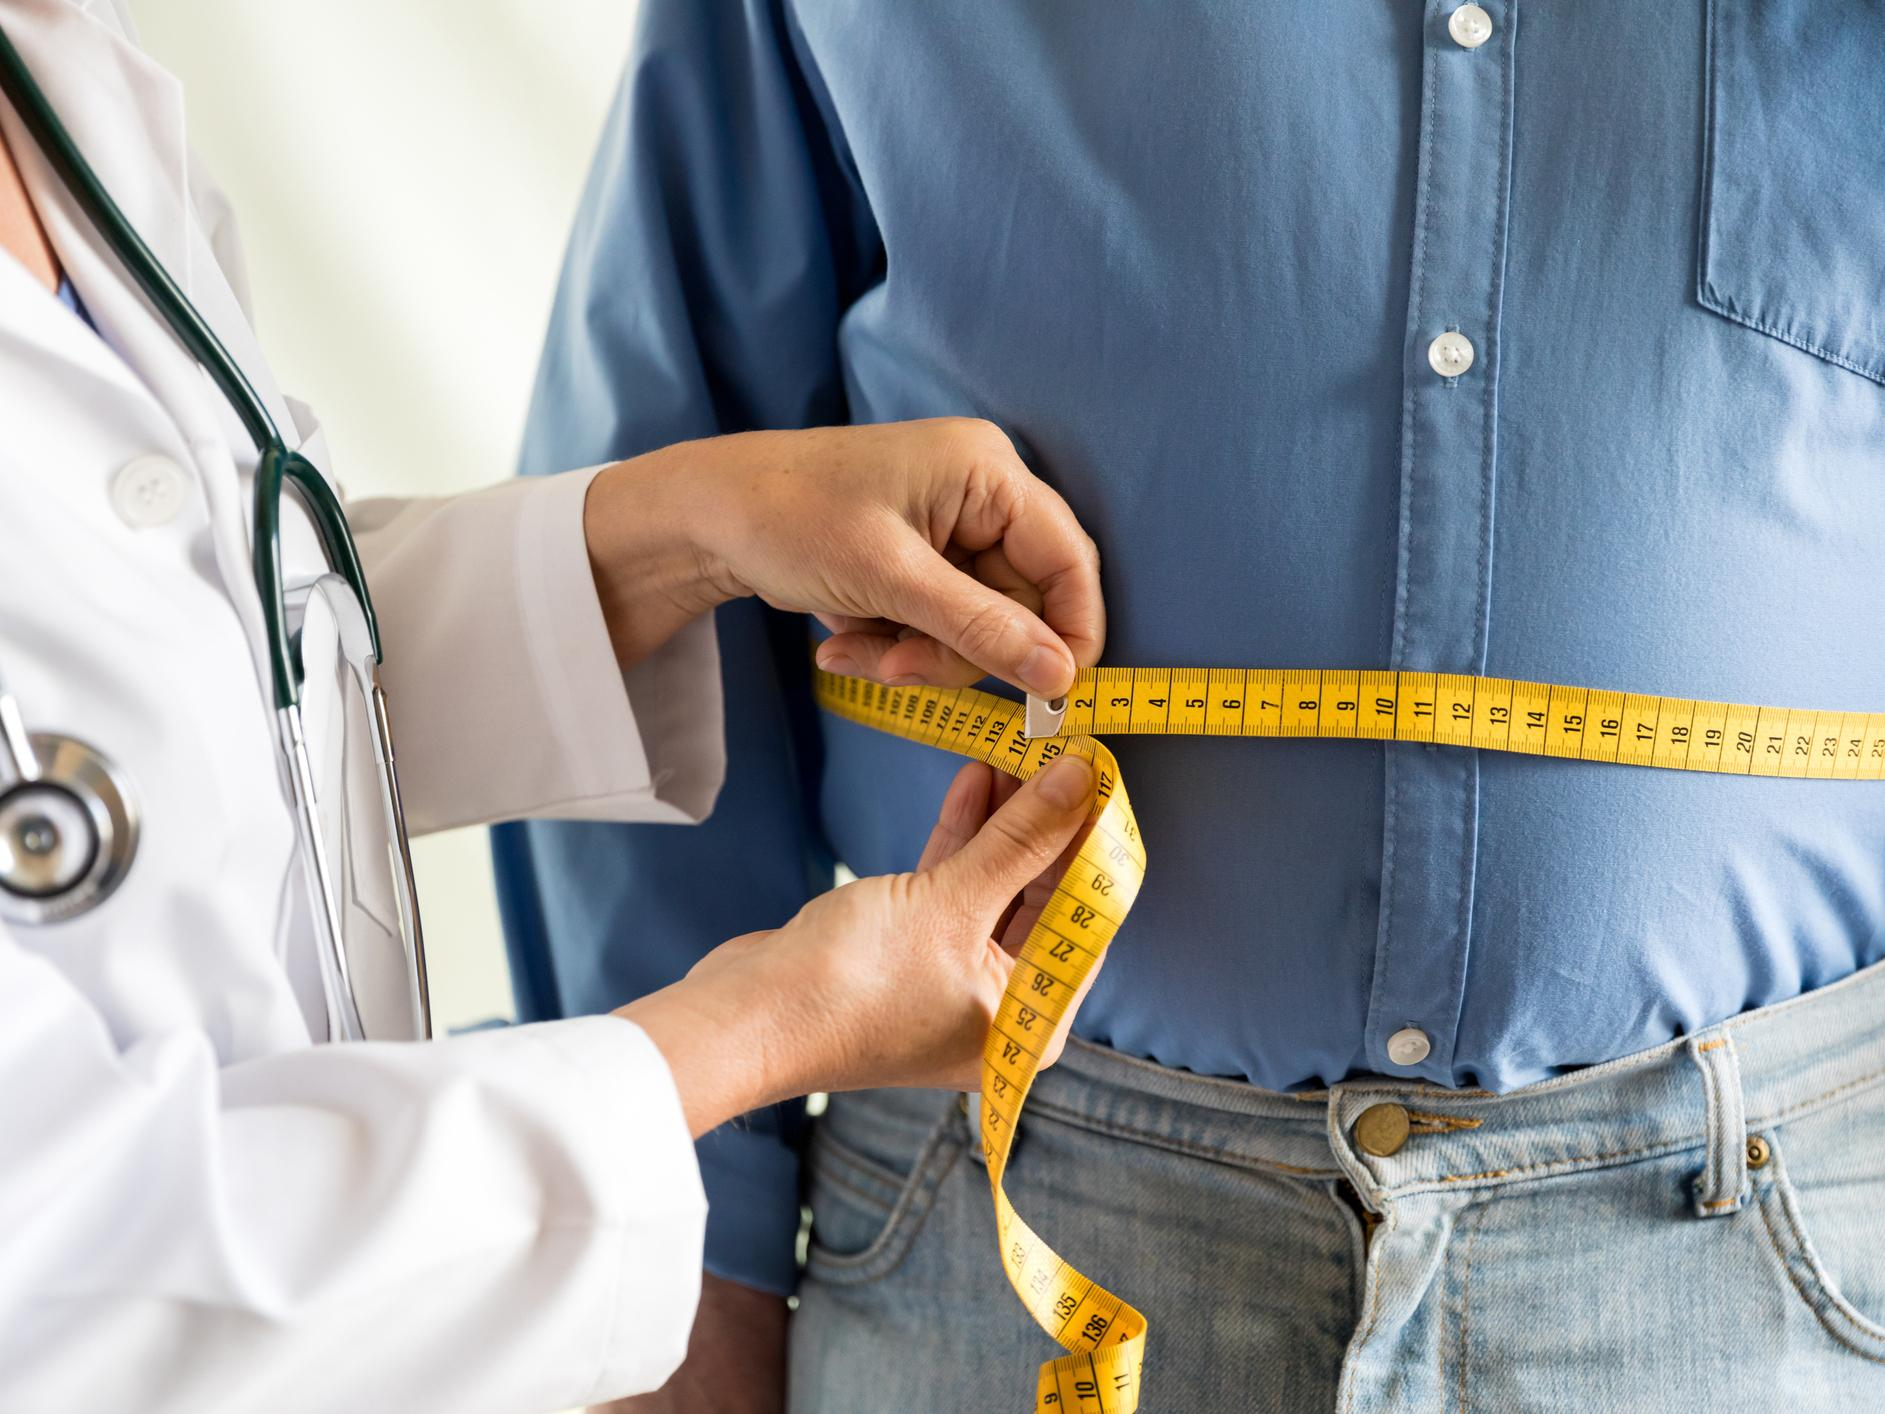 Coronavirus: Obesity doubles risk of needing hospital treatment, study suggests